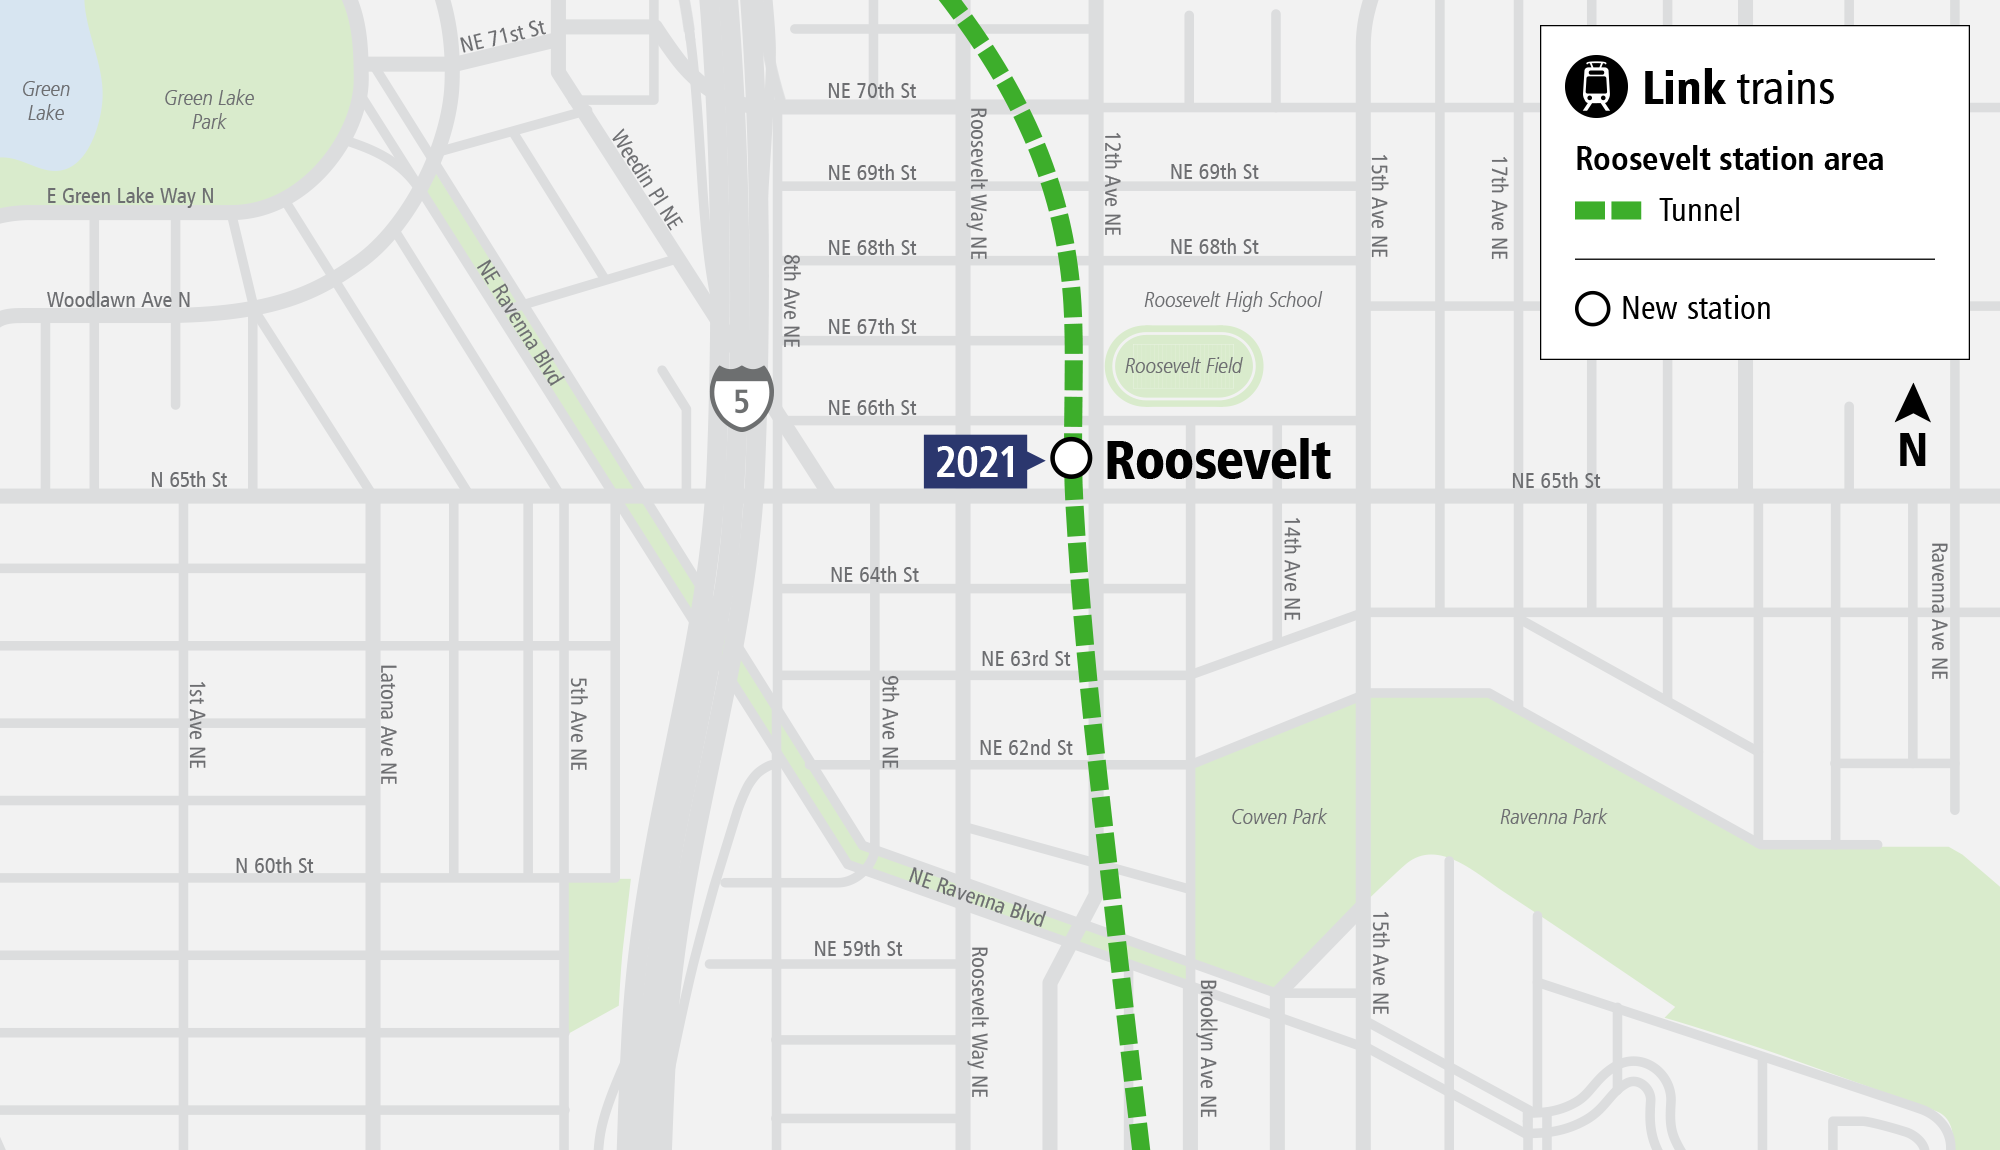 System Expansion web map for Roosevelt Station